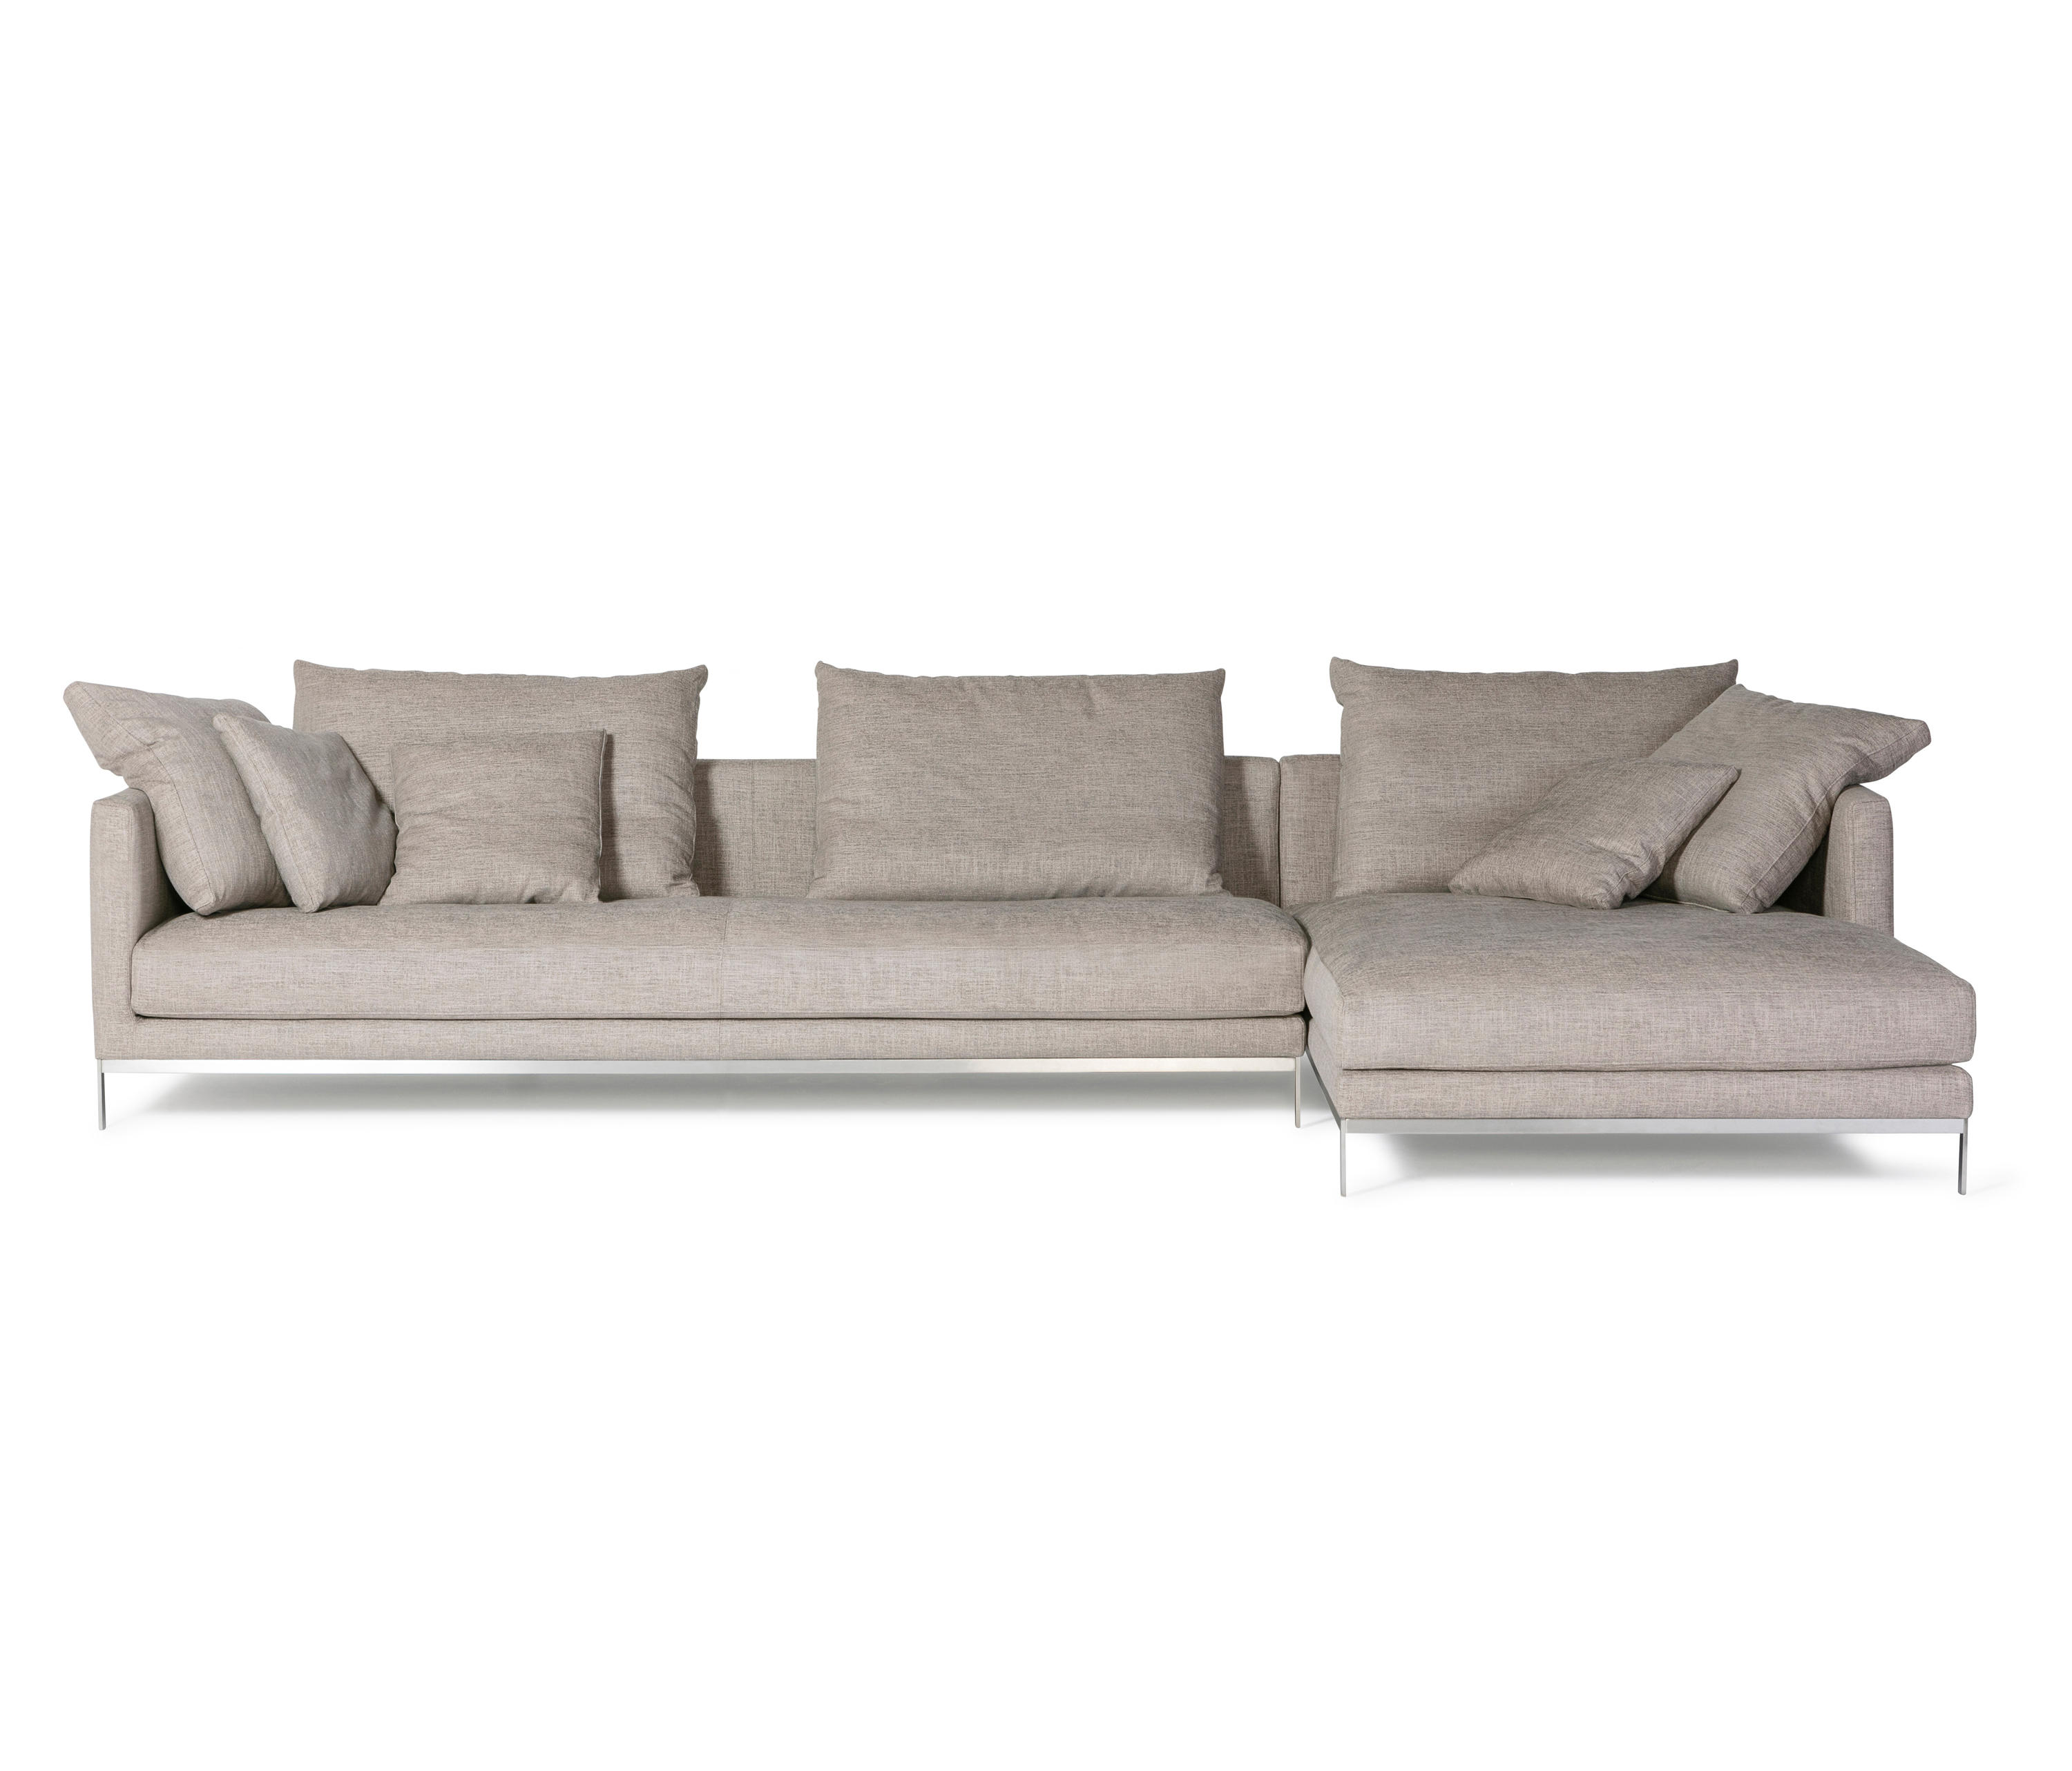 RELAX - Sofas from Linteloo | Architonic